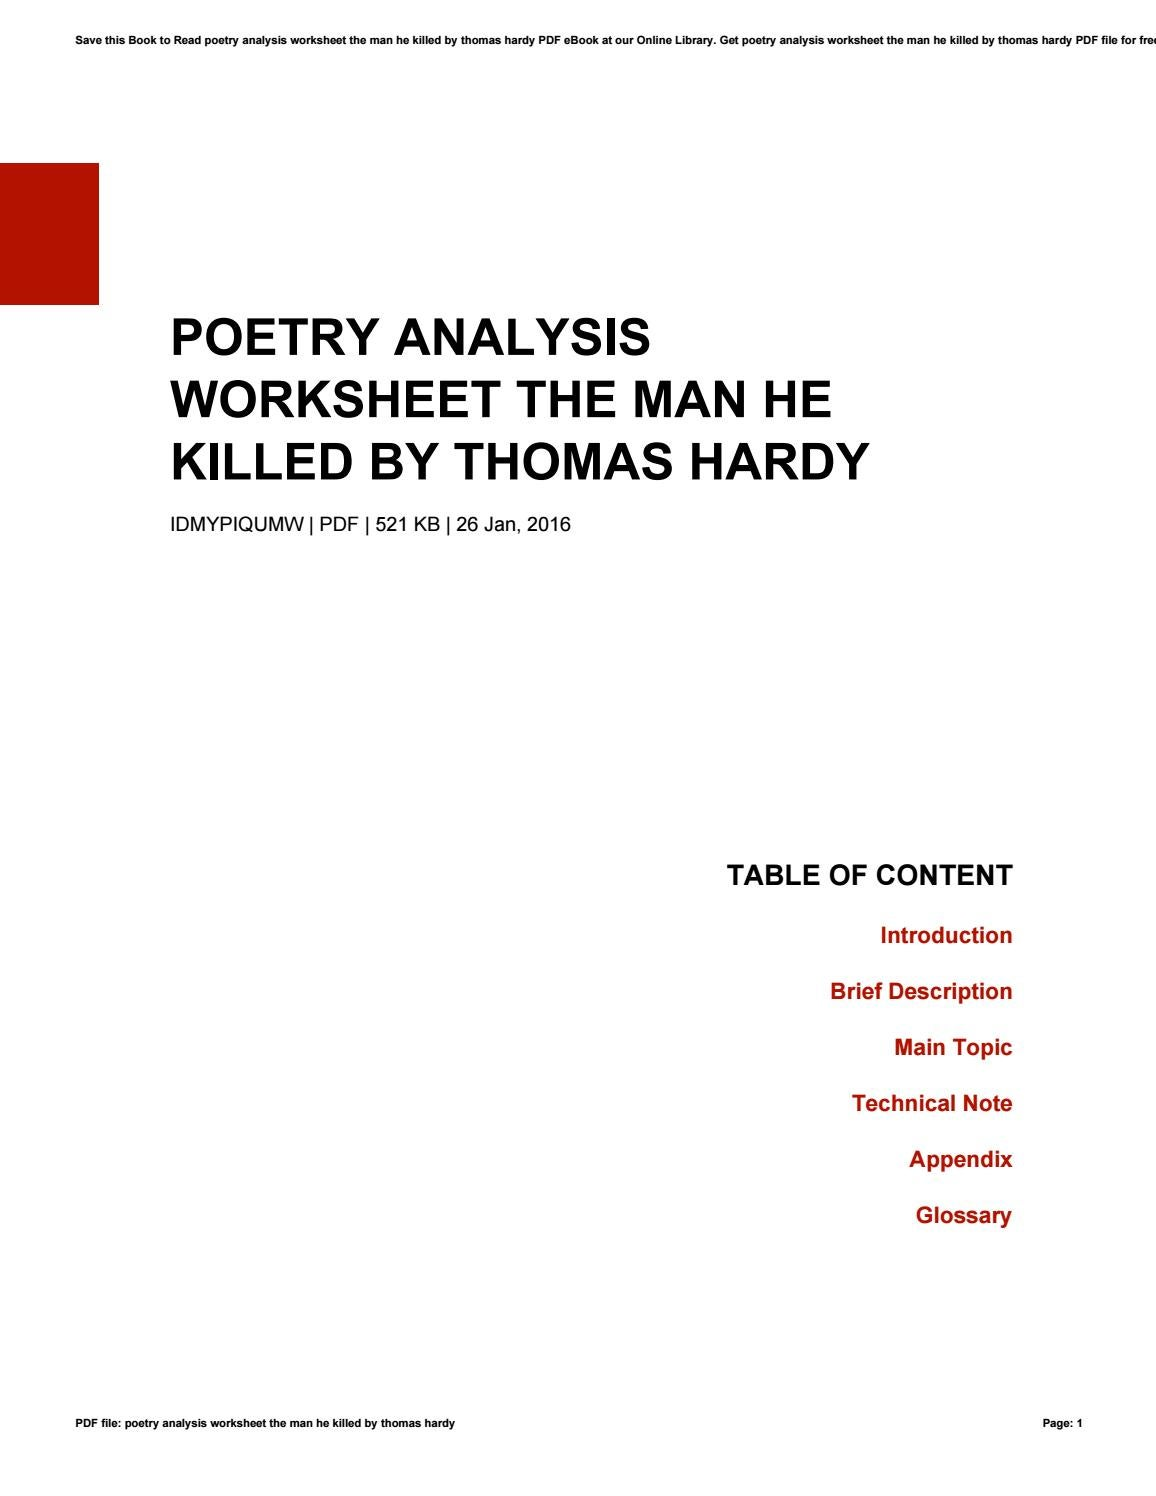 Worksheet How To Analyze A Poem Worksheet Carlos Lomas Worksheet